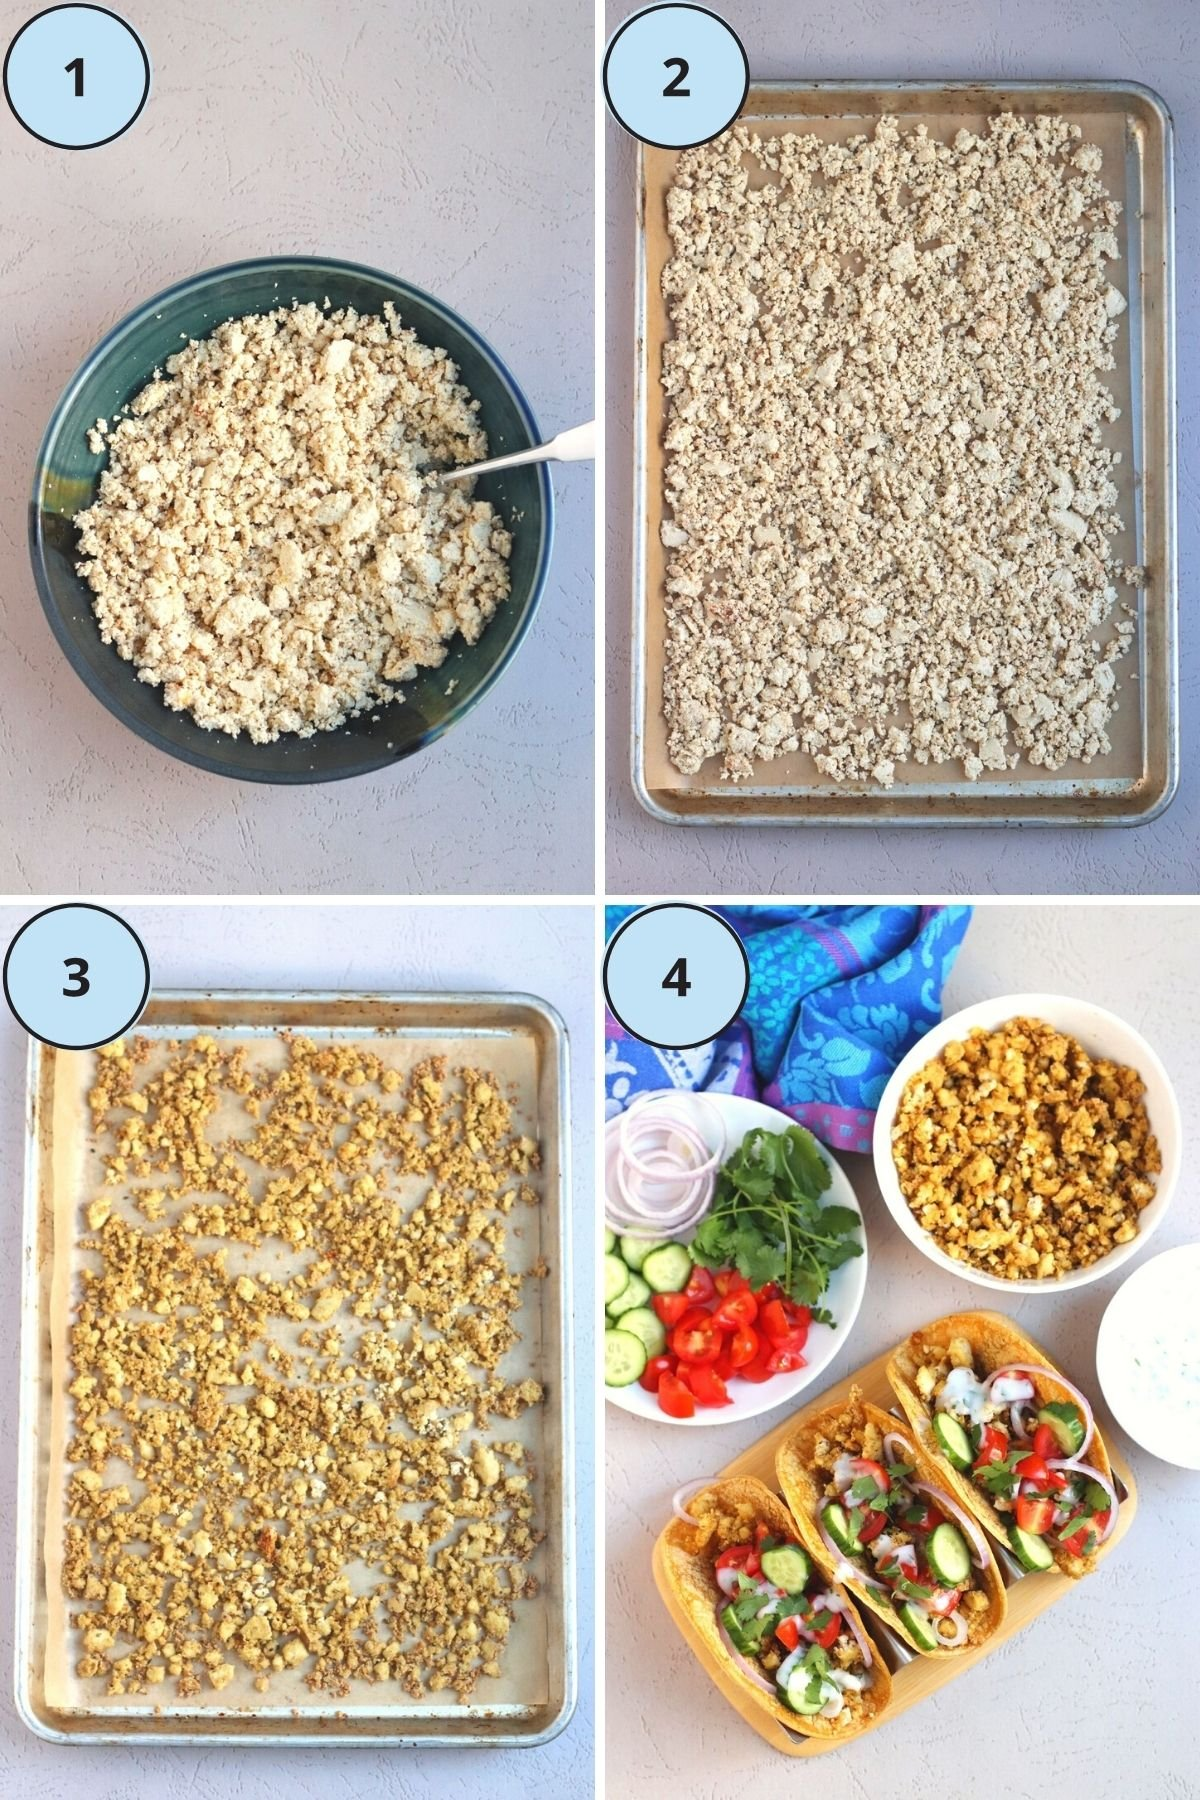 Collage of images of steps for making this recipe